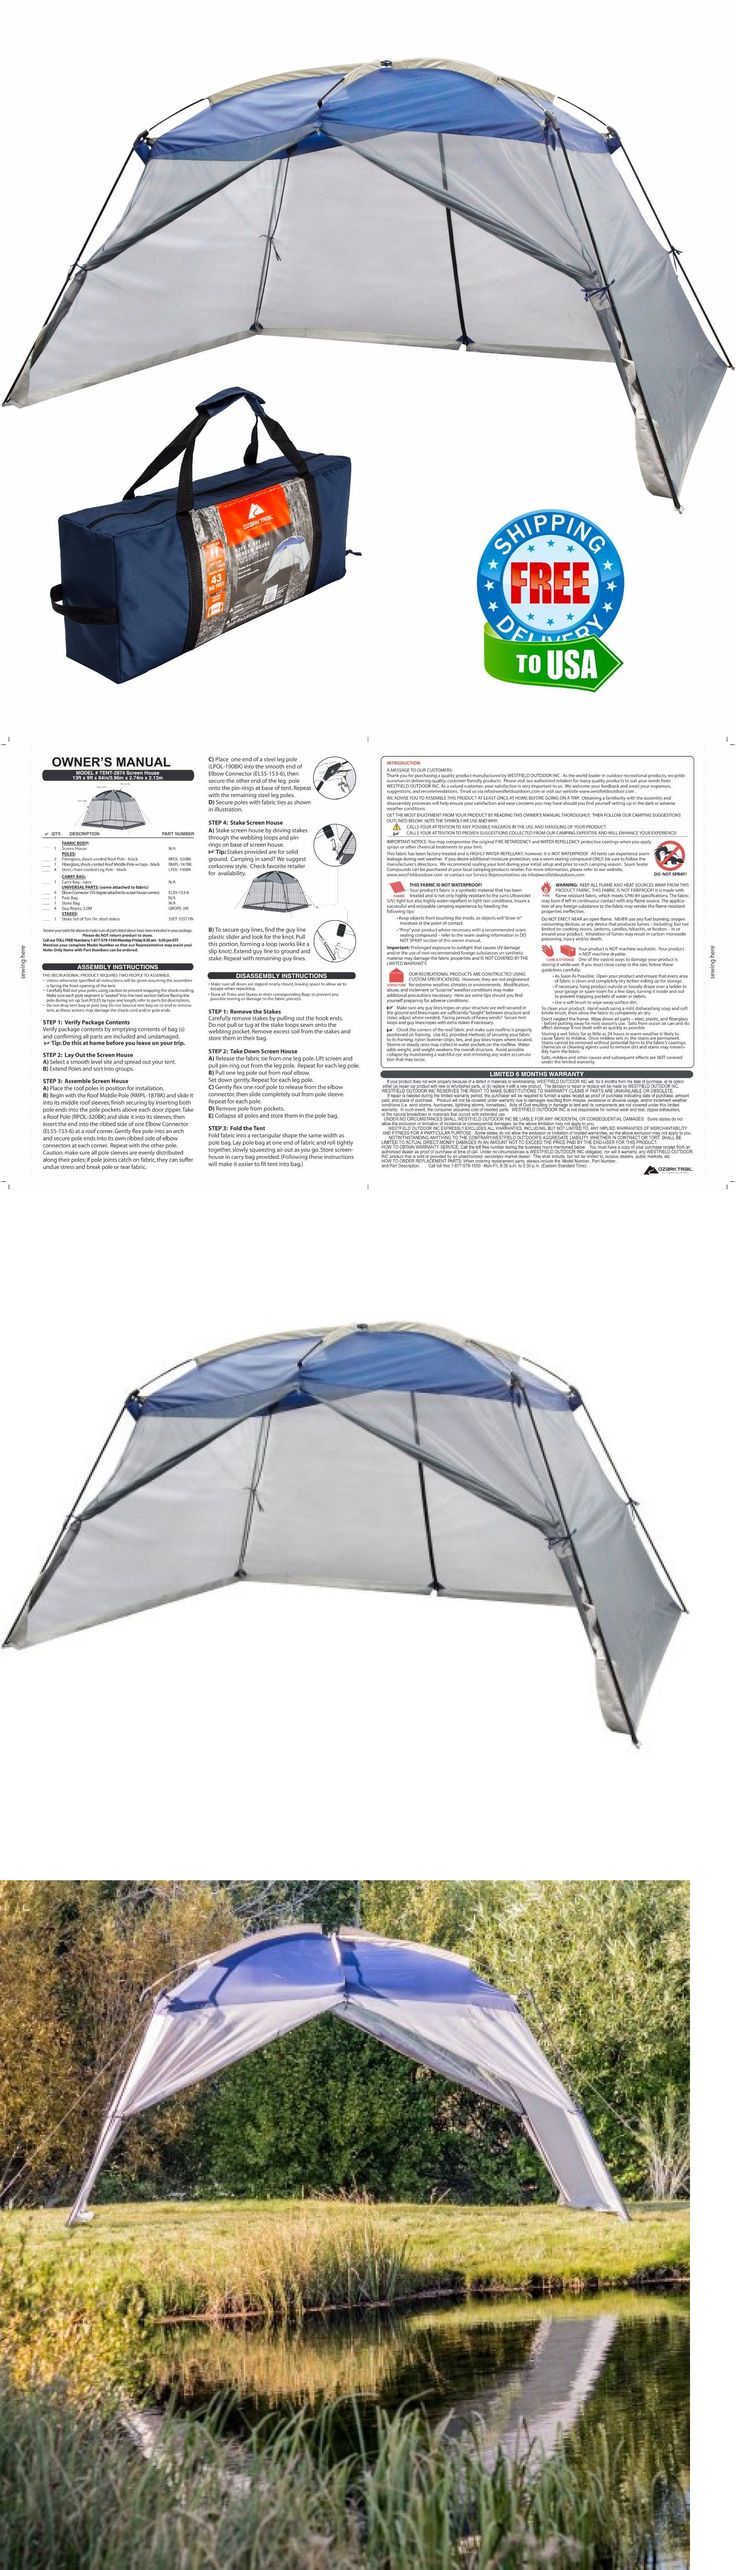 Canopies and Shelters 179011: Screen House Ozark Outdoor Canopy Shade Beach Gazebo Instant Pop Up Camping Tent -> BUY IT NOW ONLY: $63.21 on eBay!